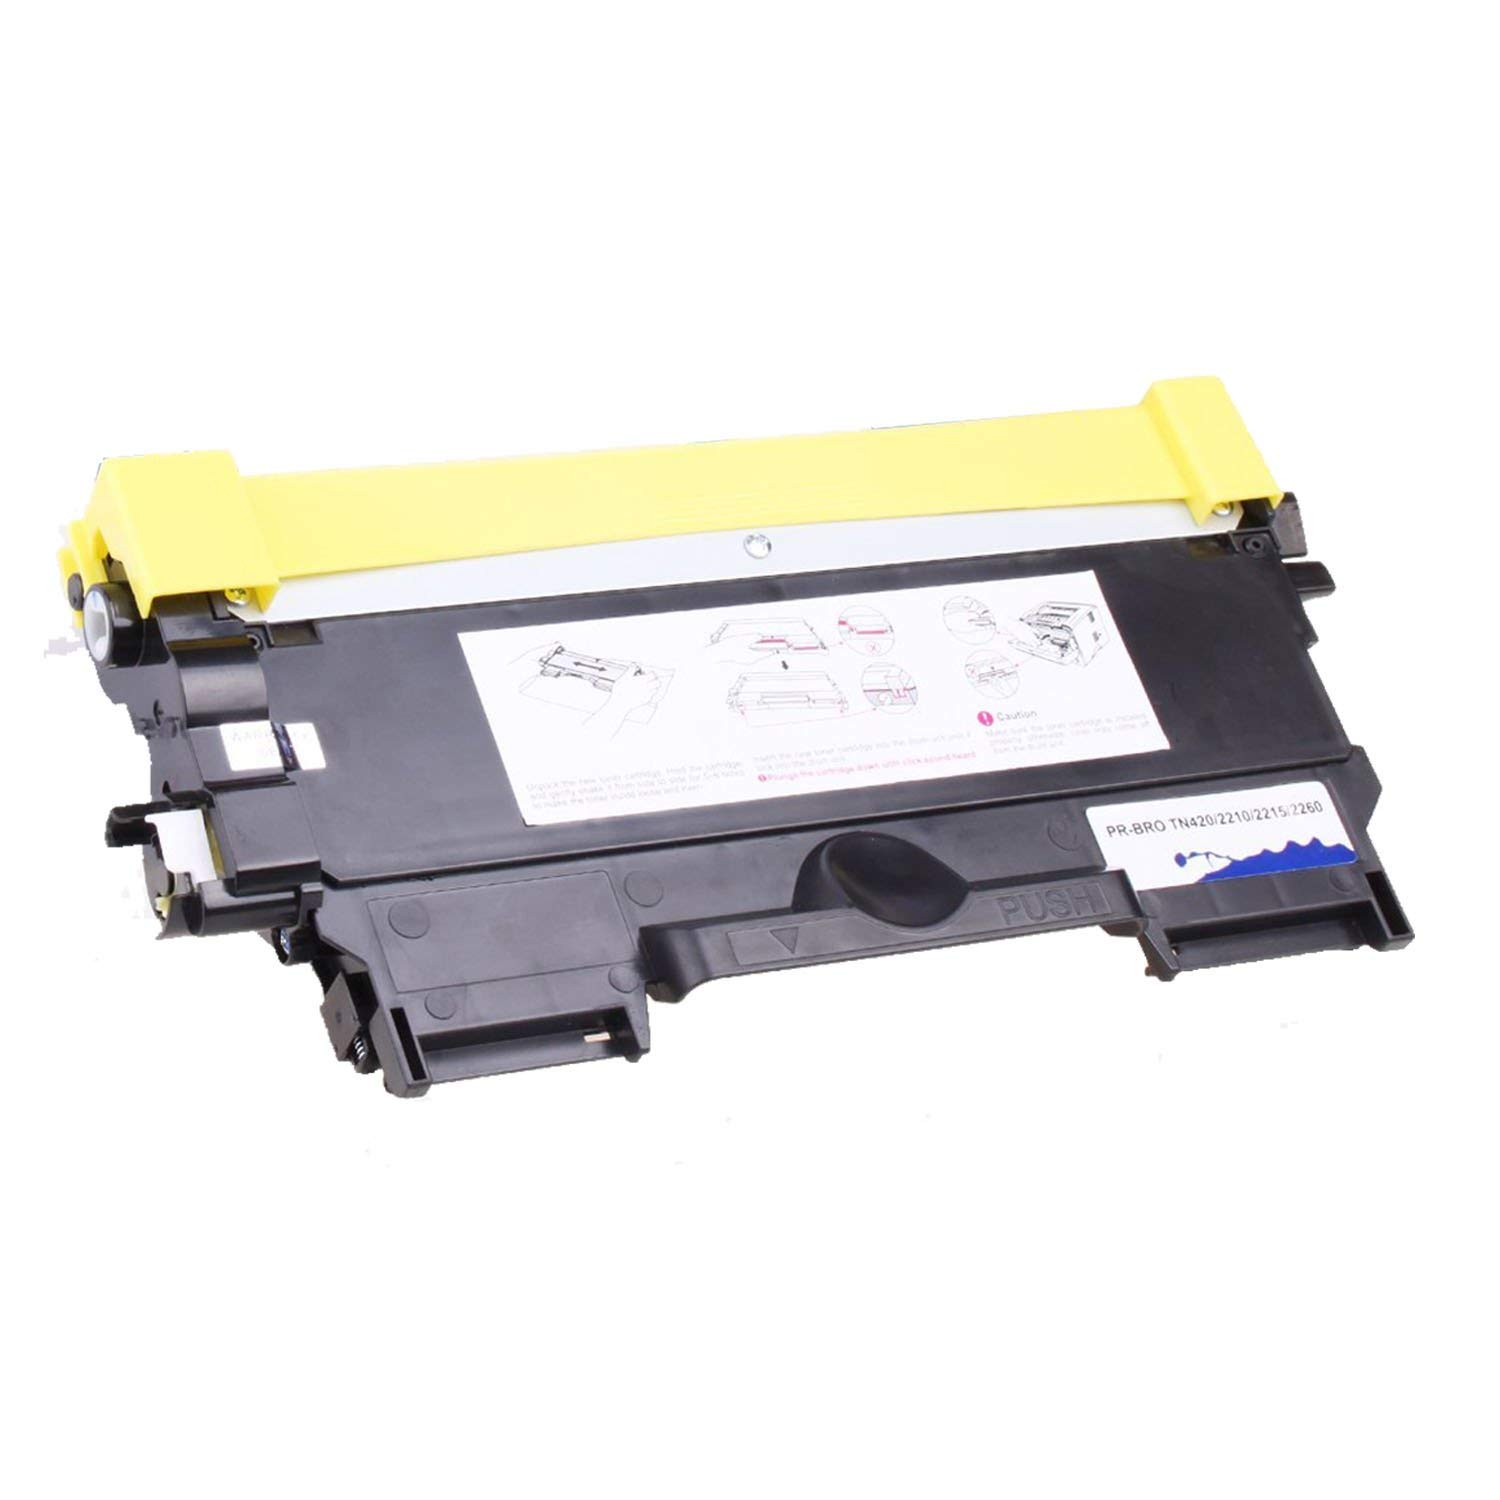 BROTHER FAX4100 DRIVERS WINDOWS 7 (2019)